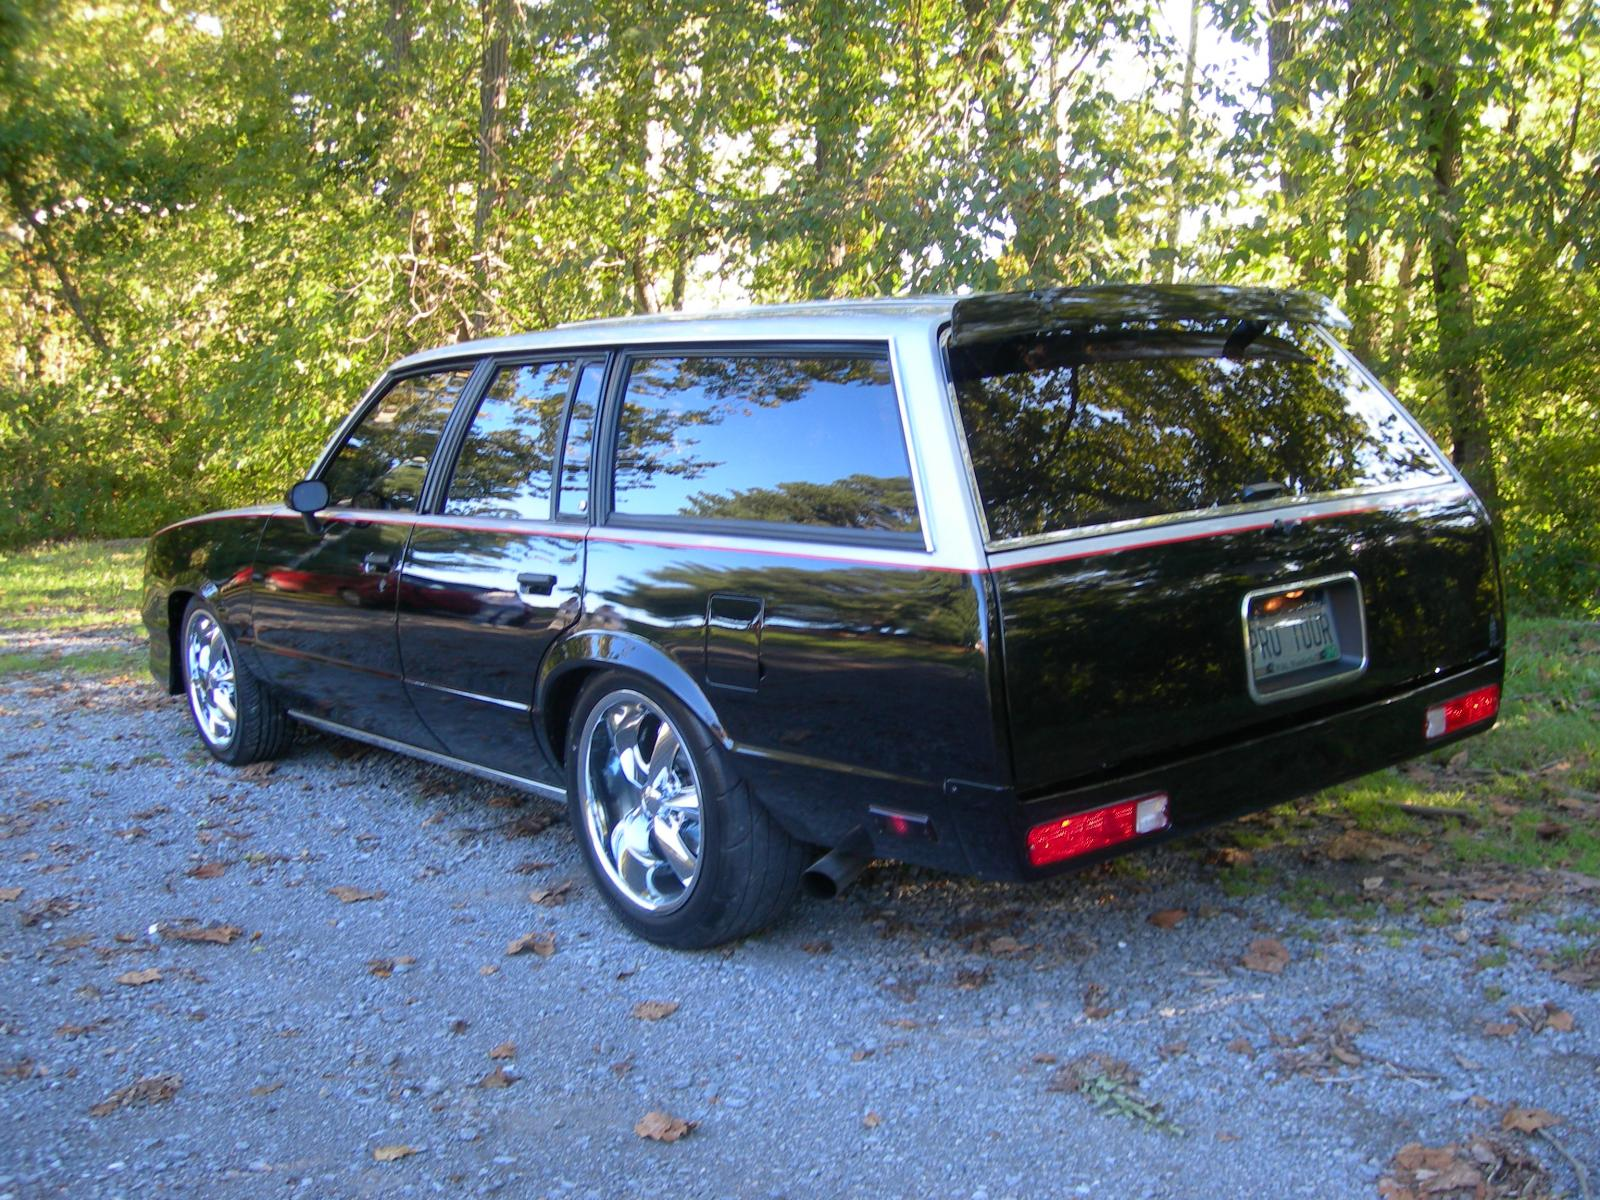 Tom Clark Chevy >> Project Grocery Getter...1983 Chevy Malibu Wagon! - Page 8